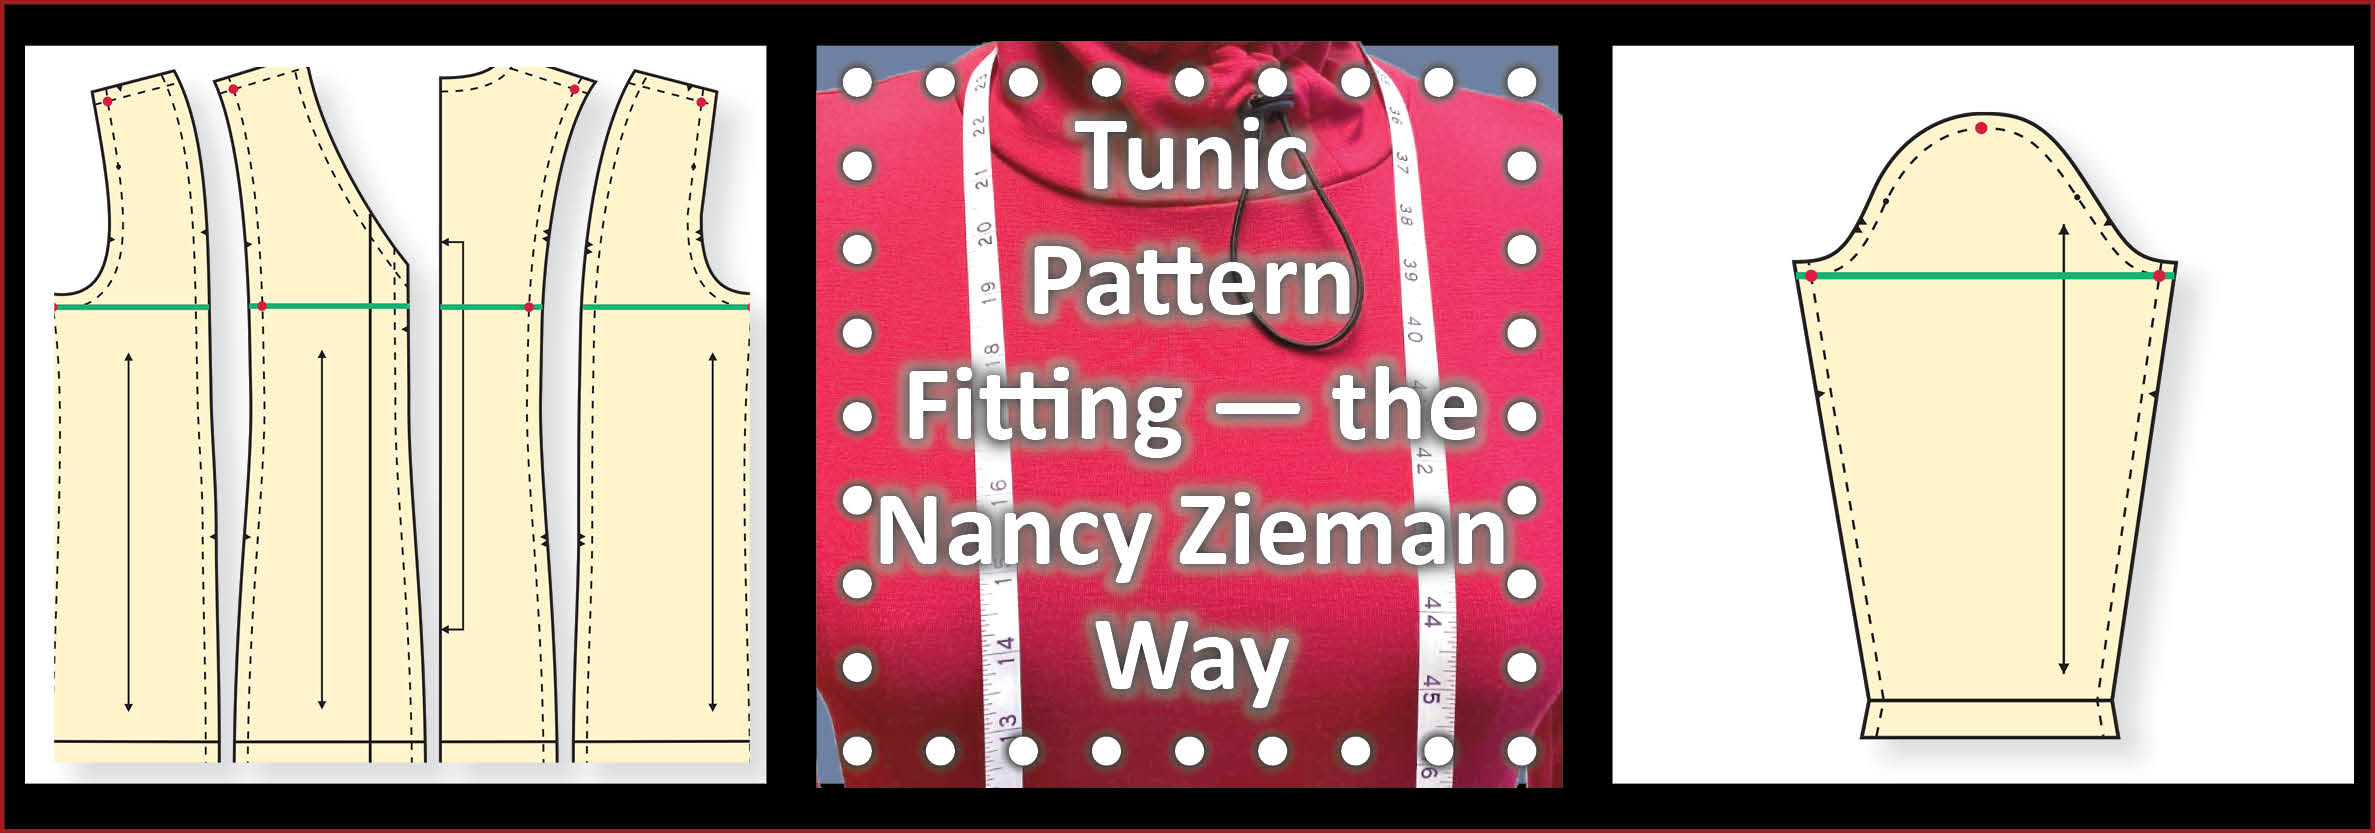 Stitch it Sisters Tunic Pattern Fitting Tutorial the Nancy Zieman Way S!S 113 by NZ Productions Featured Image